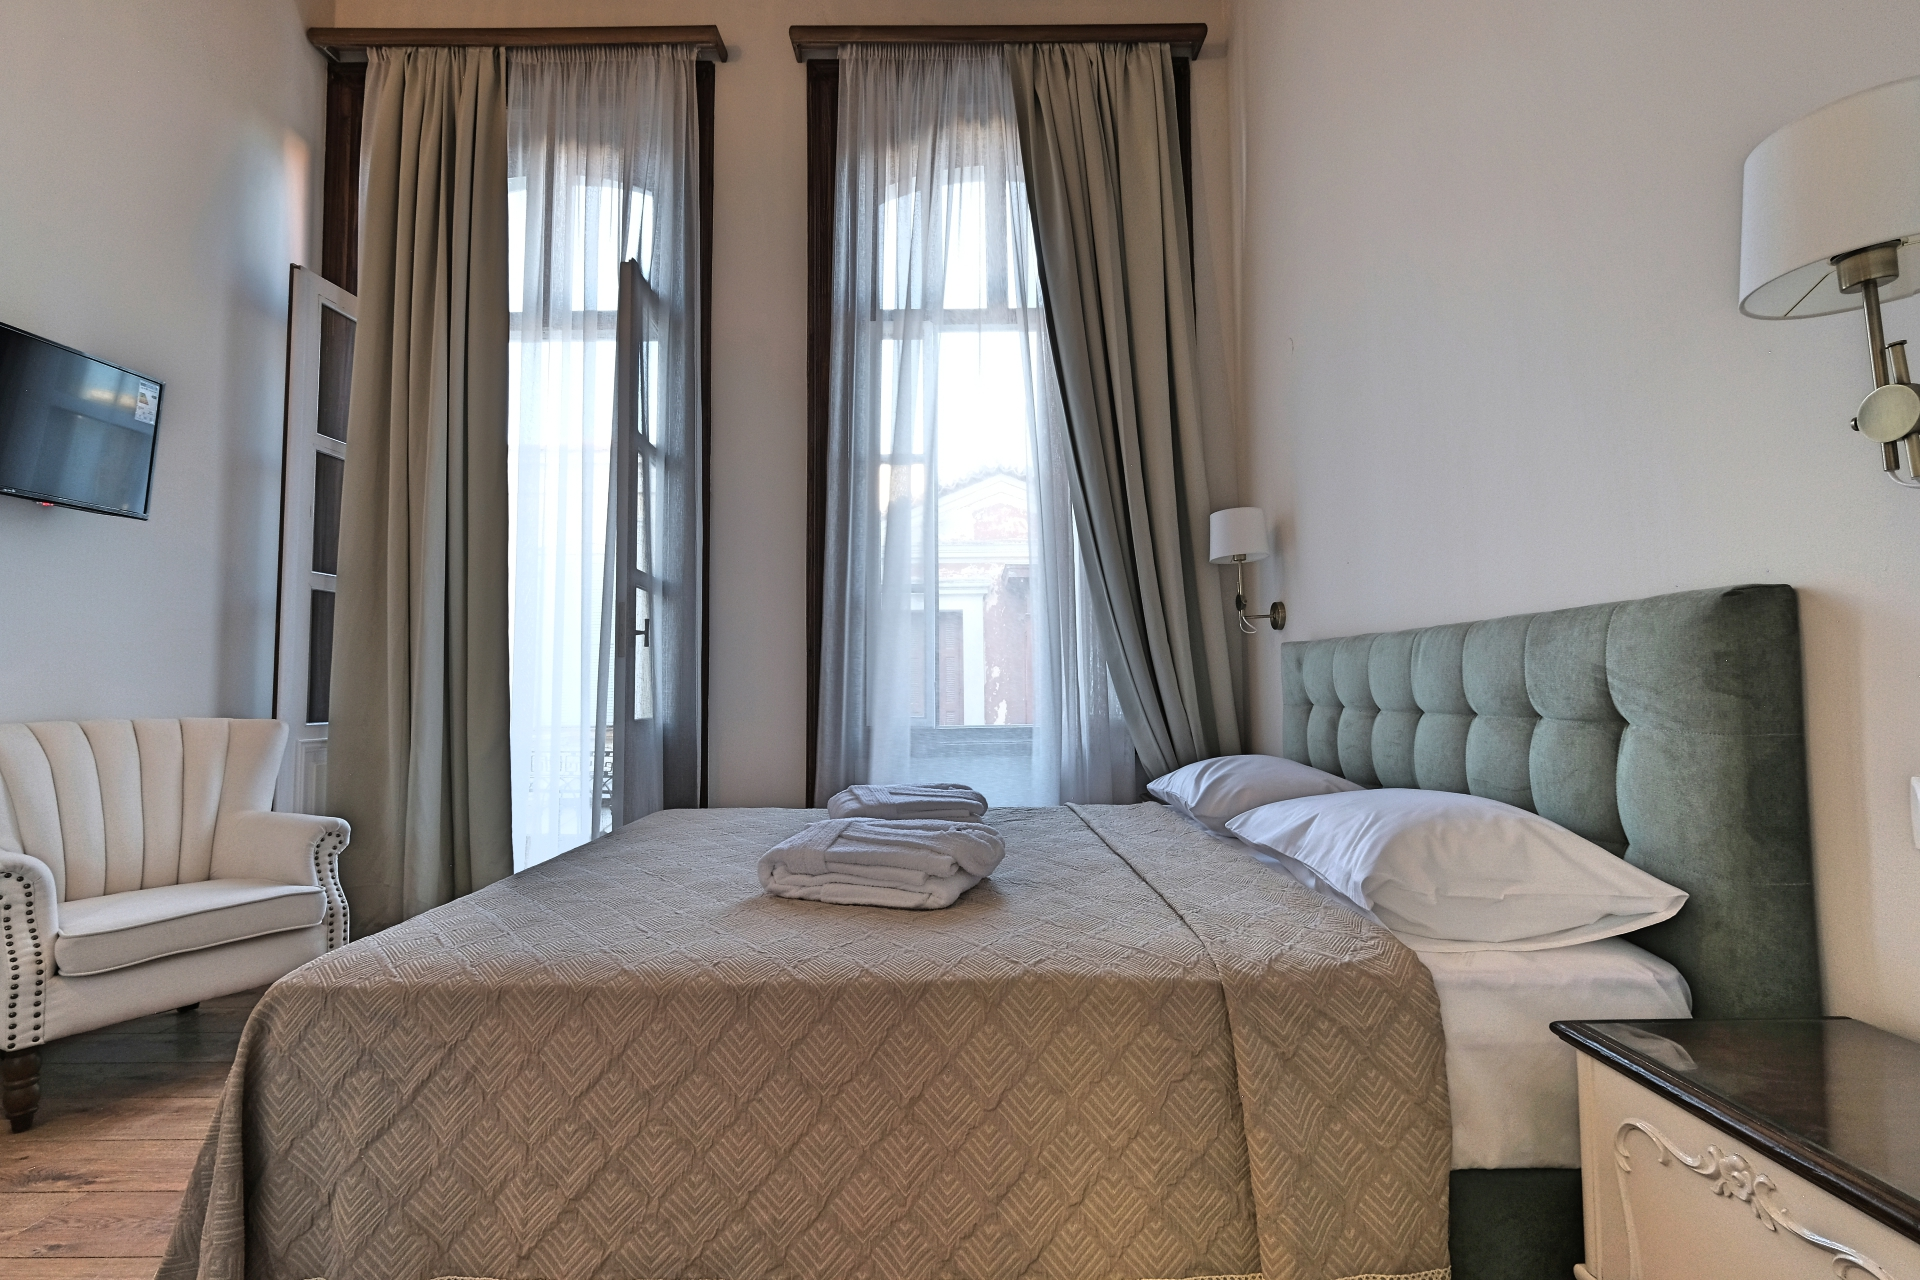 Double Room with Balcony Bed - Agora Residence - Hotel in Chios